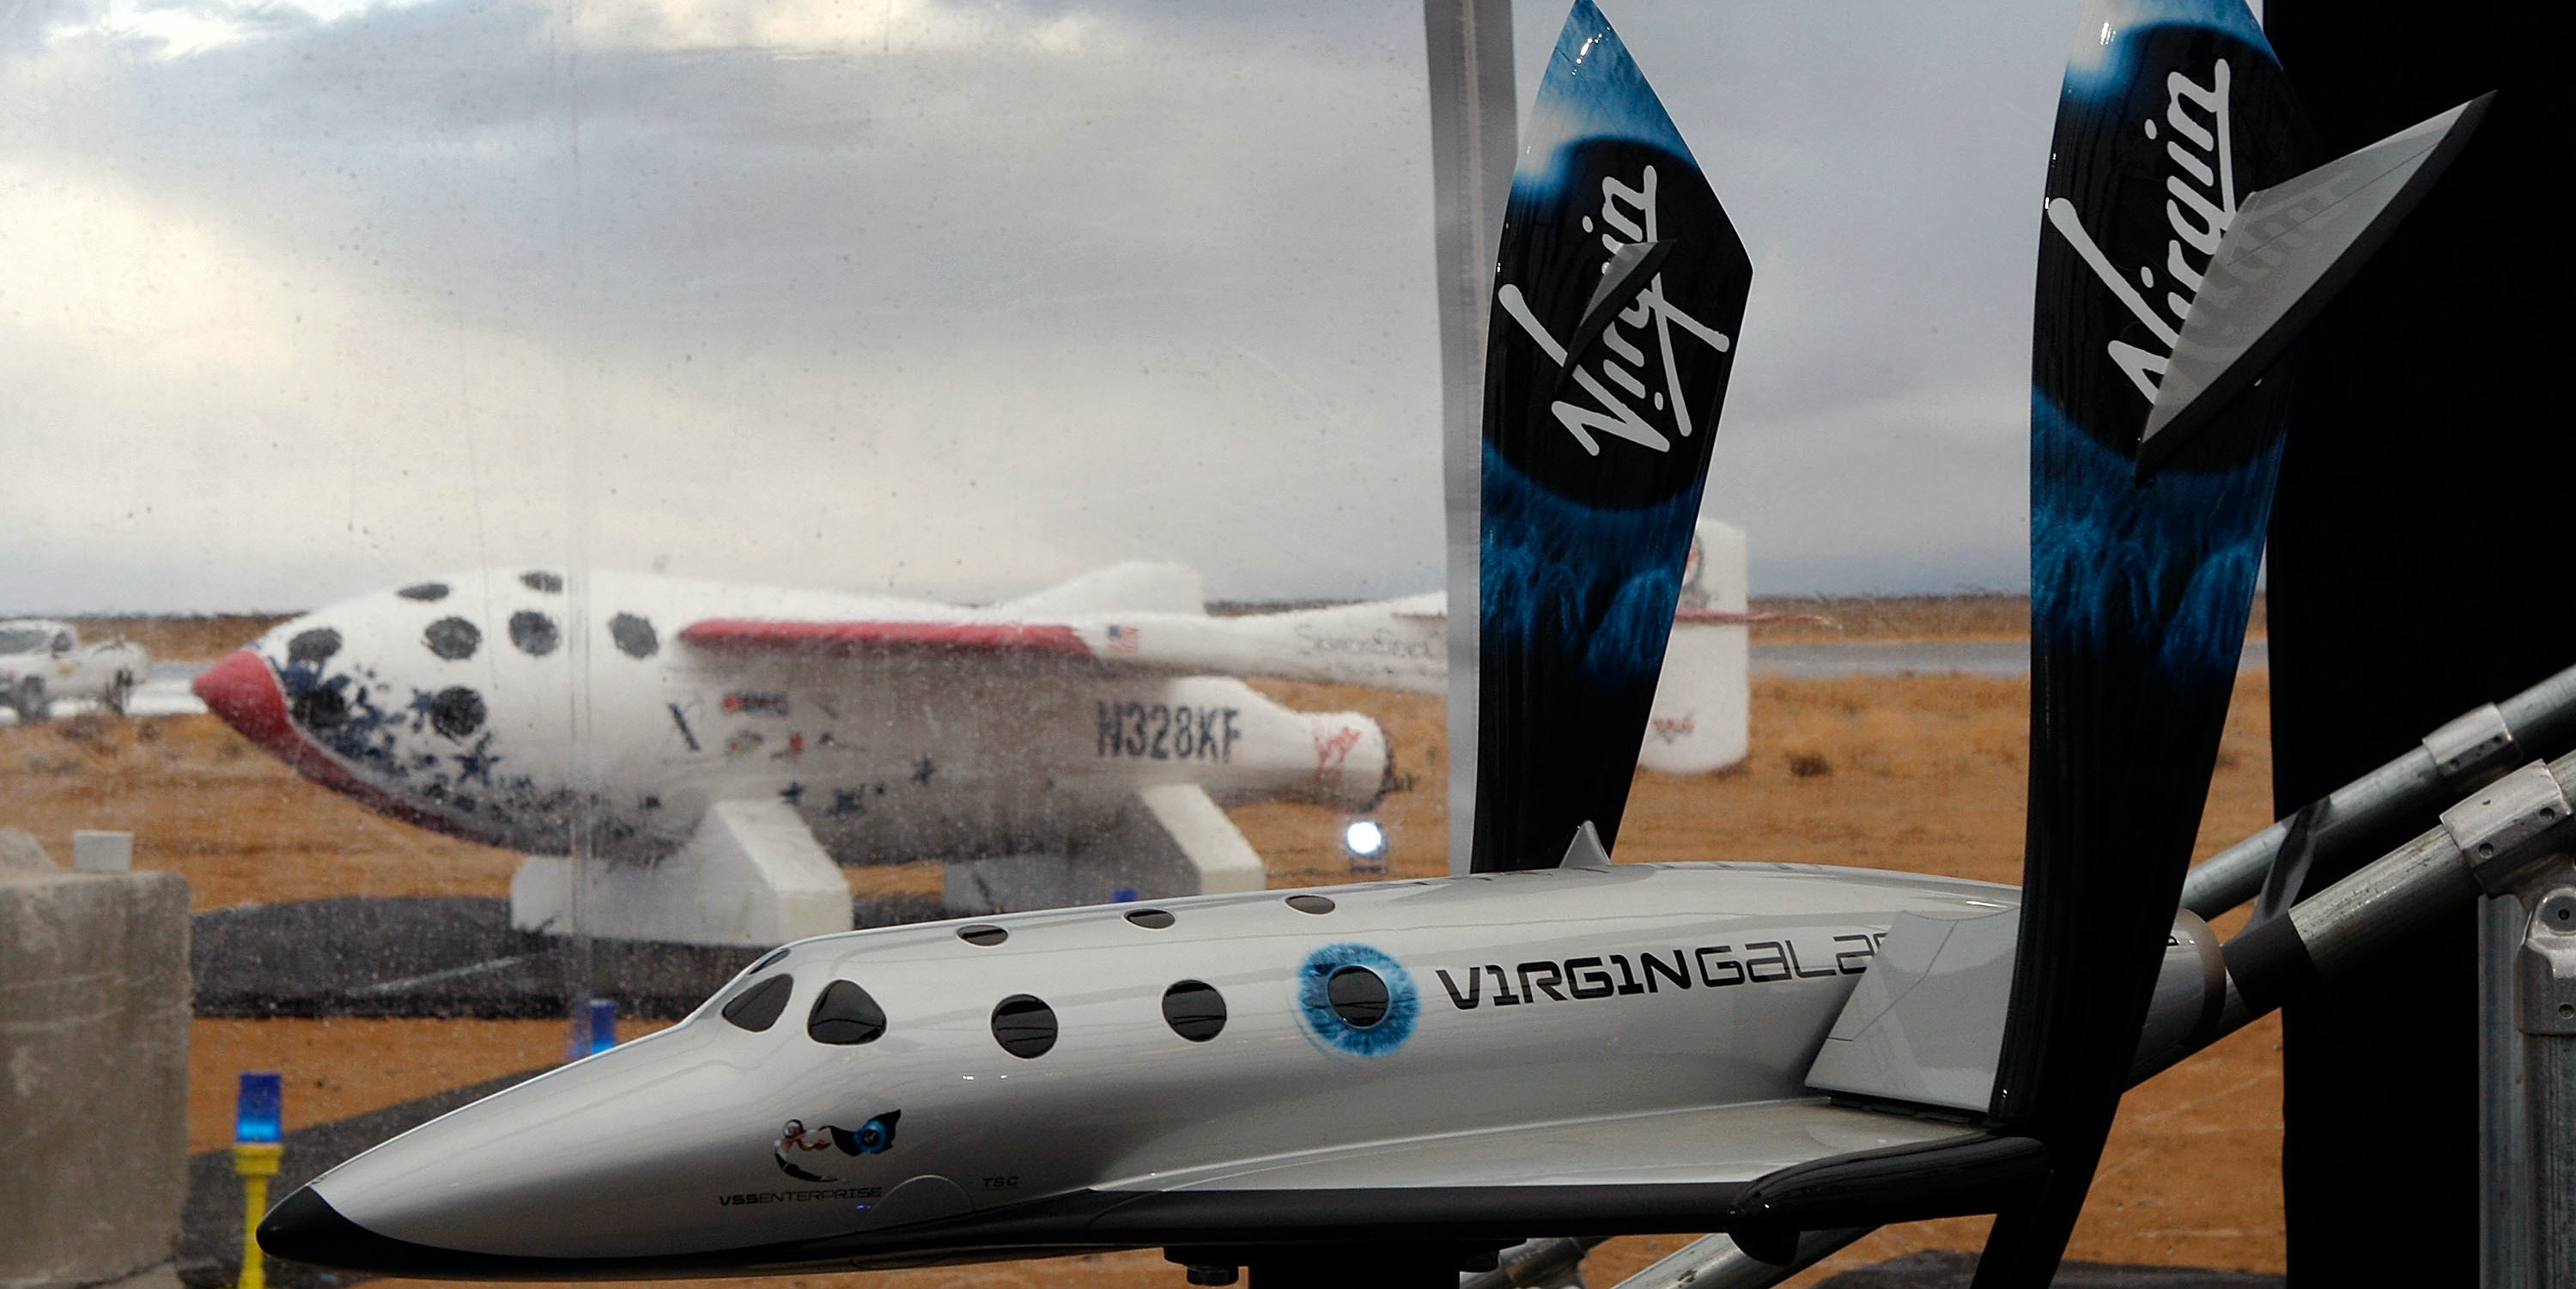 Virgin Galactic will host a summit October 14 to explore how the space industry can be diversified.